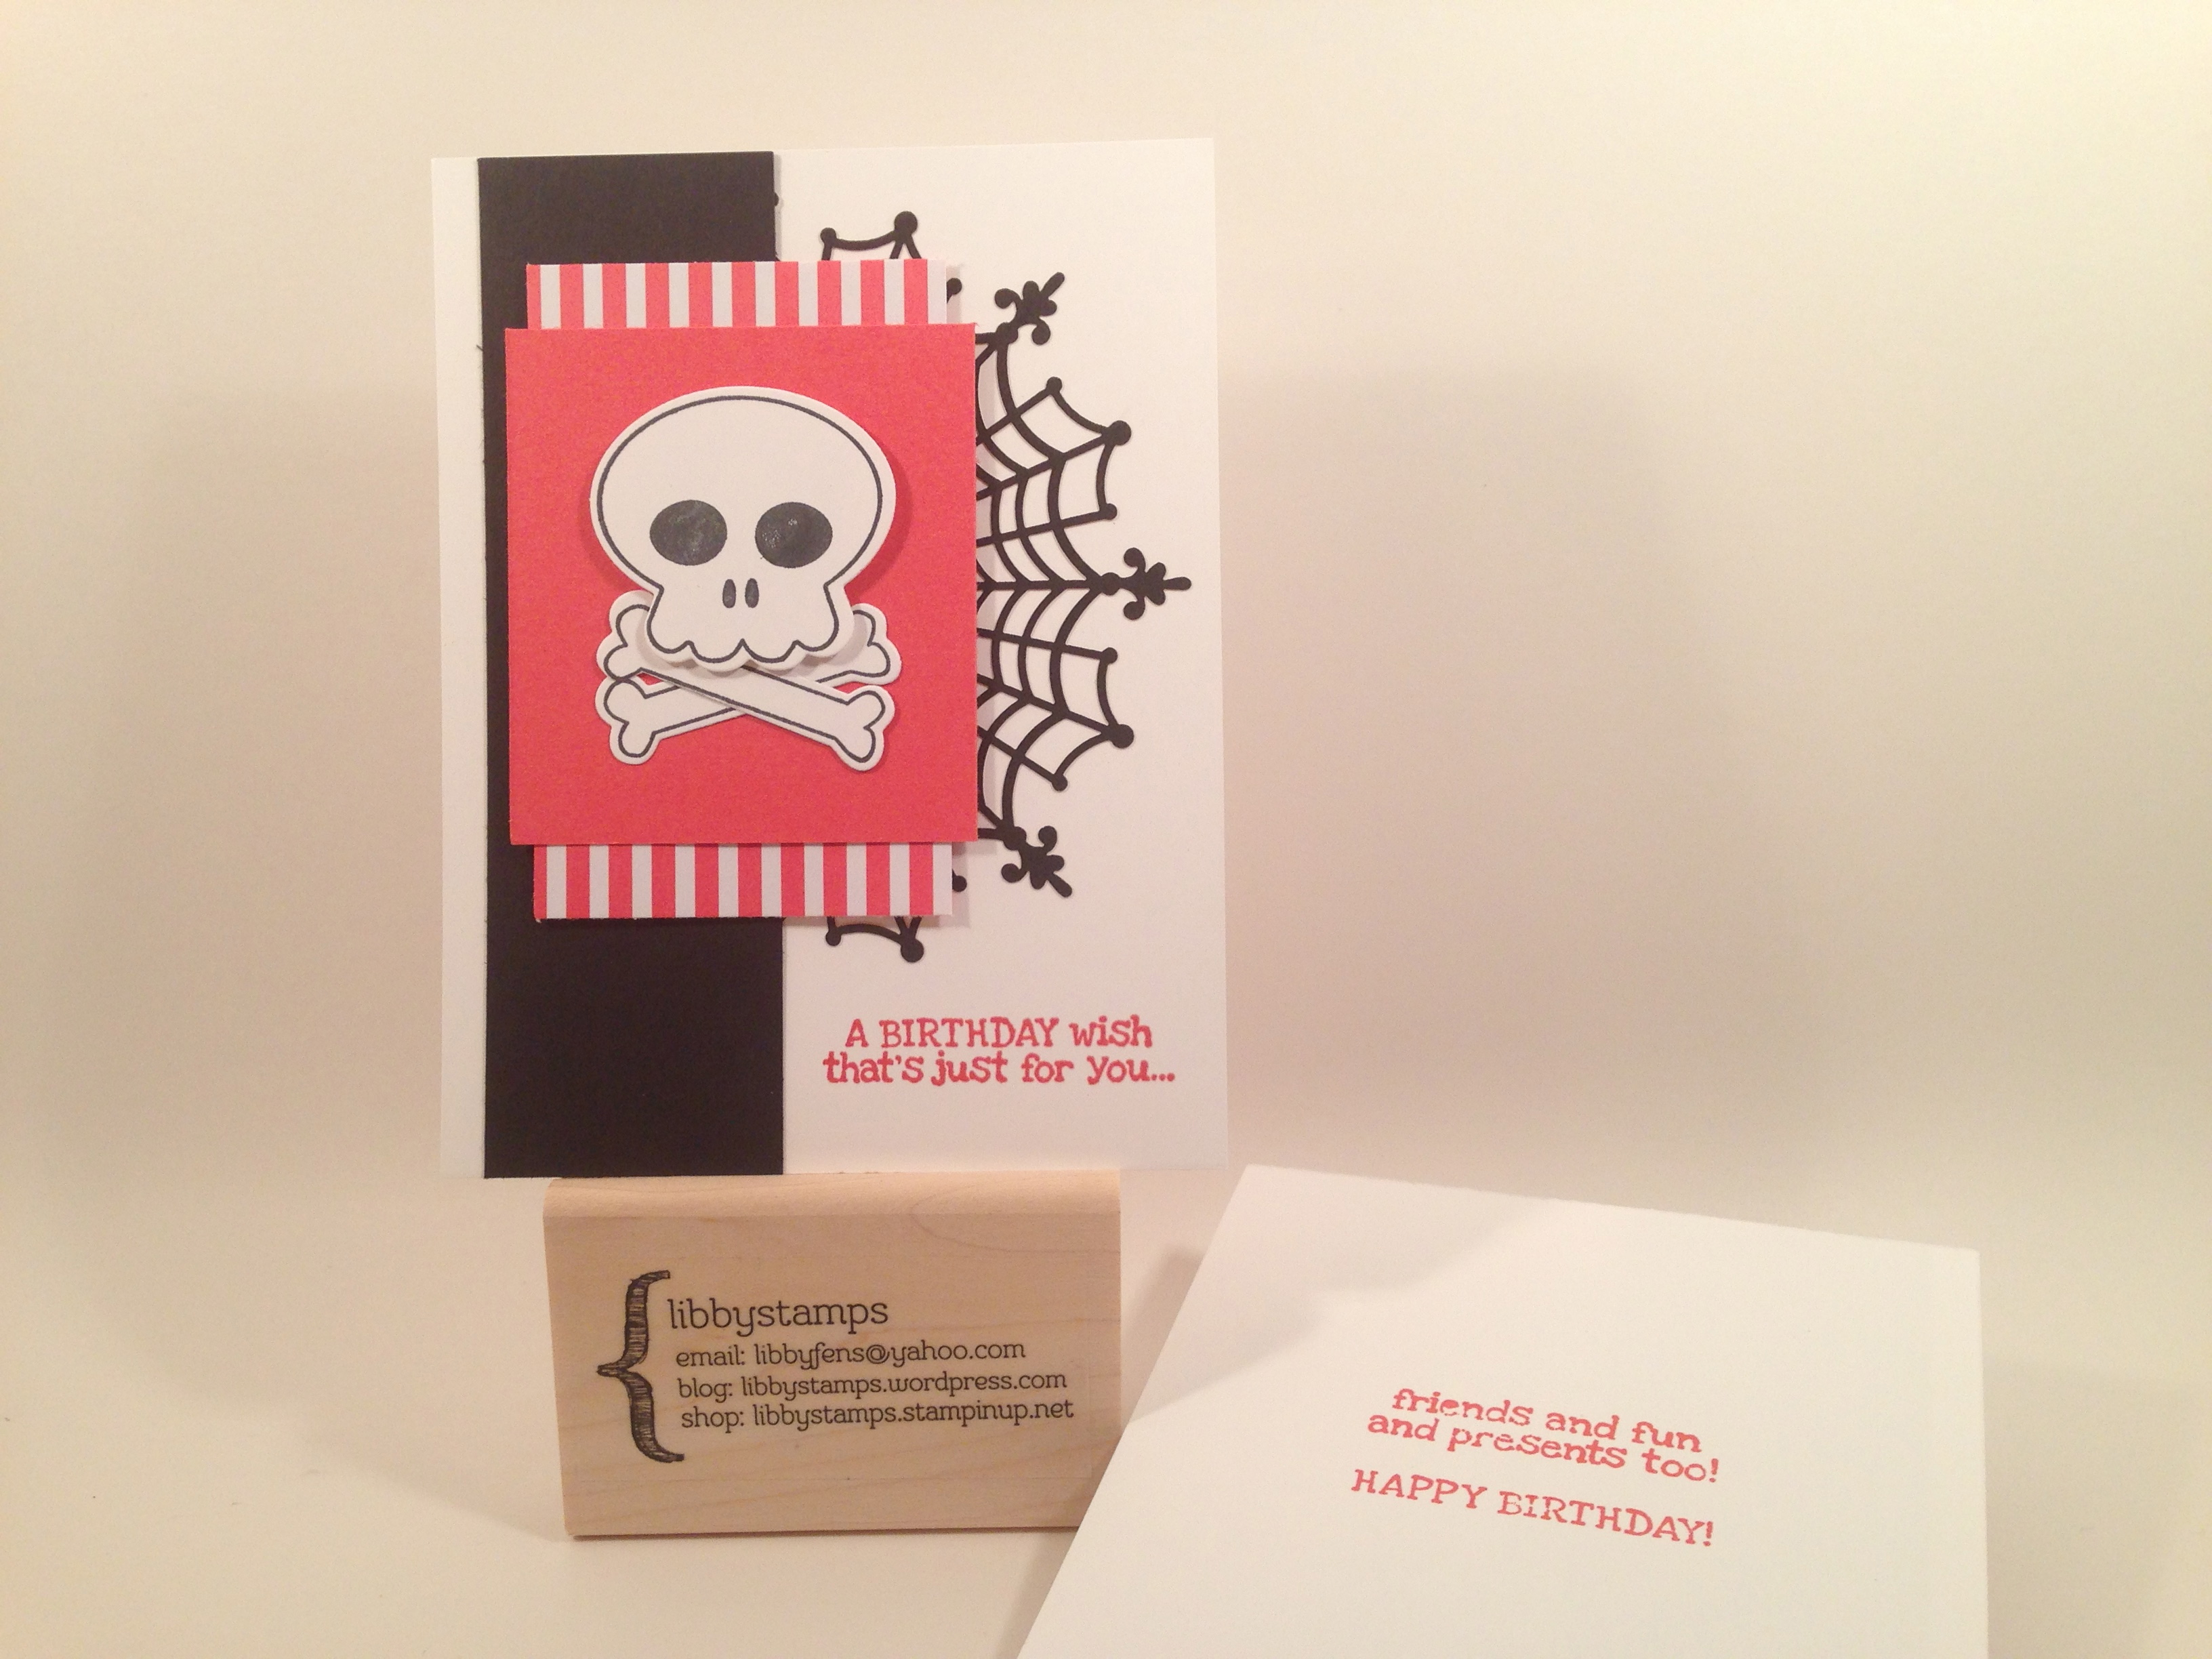 libbystamps, Stampin' Up, Howl-O-Ween Treat Stamp Set, Remembering Your Birthday Stamp Set, Boo To You Framelits, Spiderweb Doilies, 2015-2017 In Color Envelope Liner Paper, Halloween Birthday